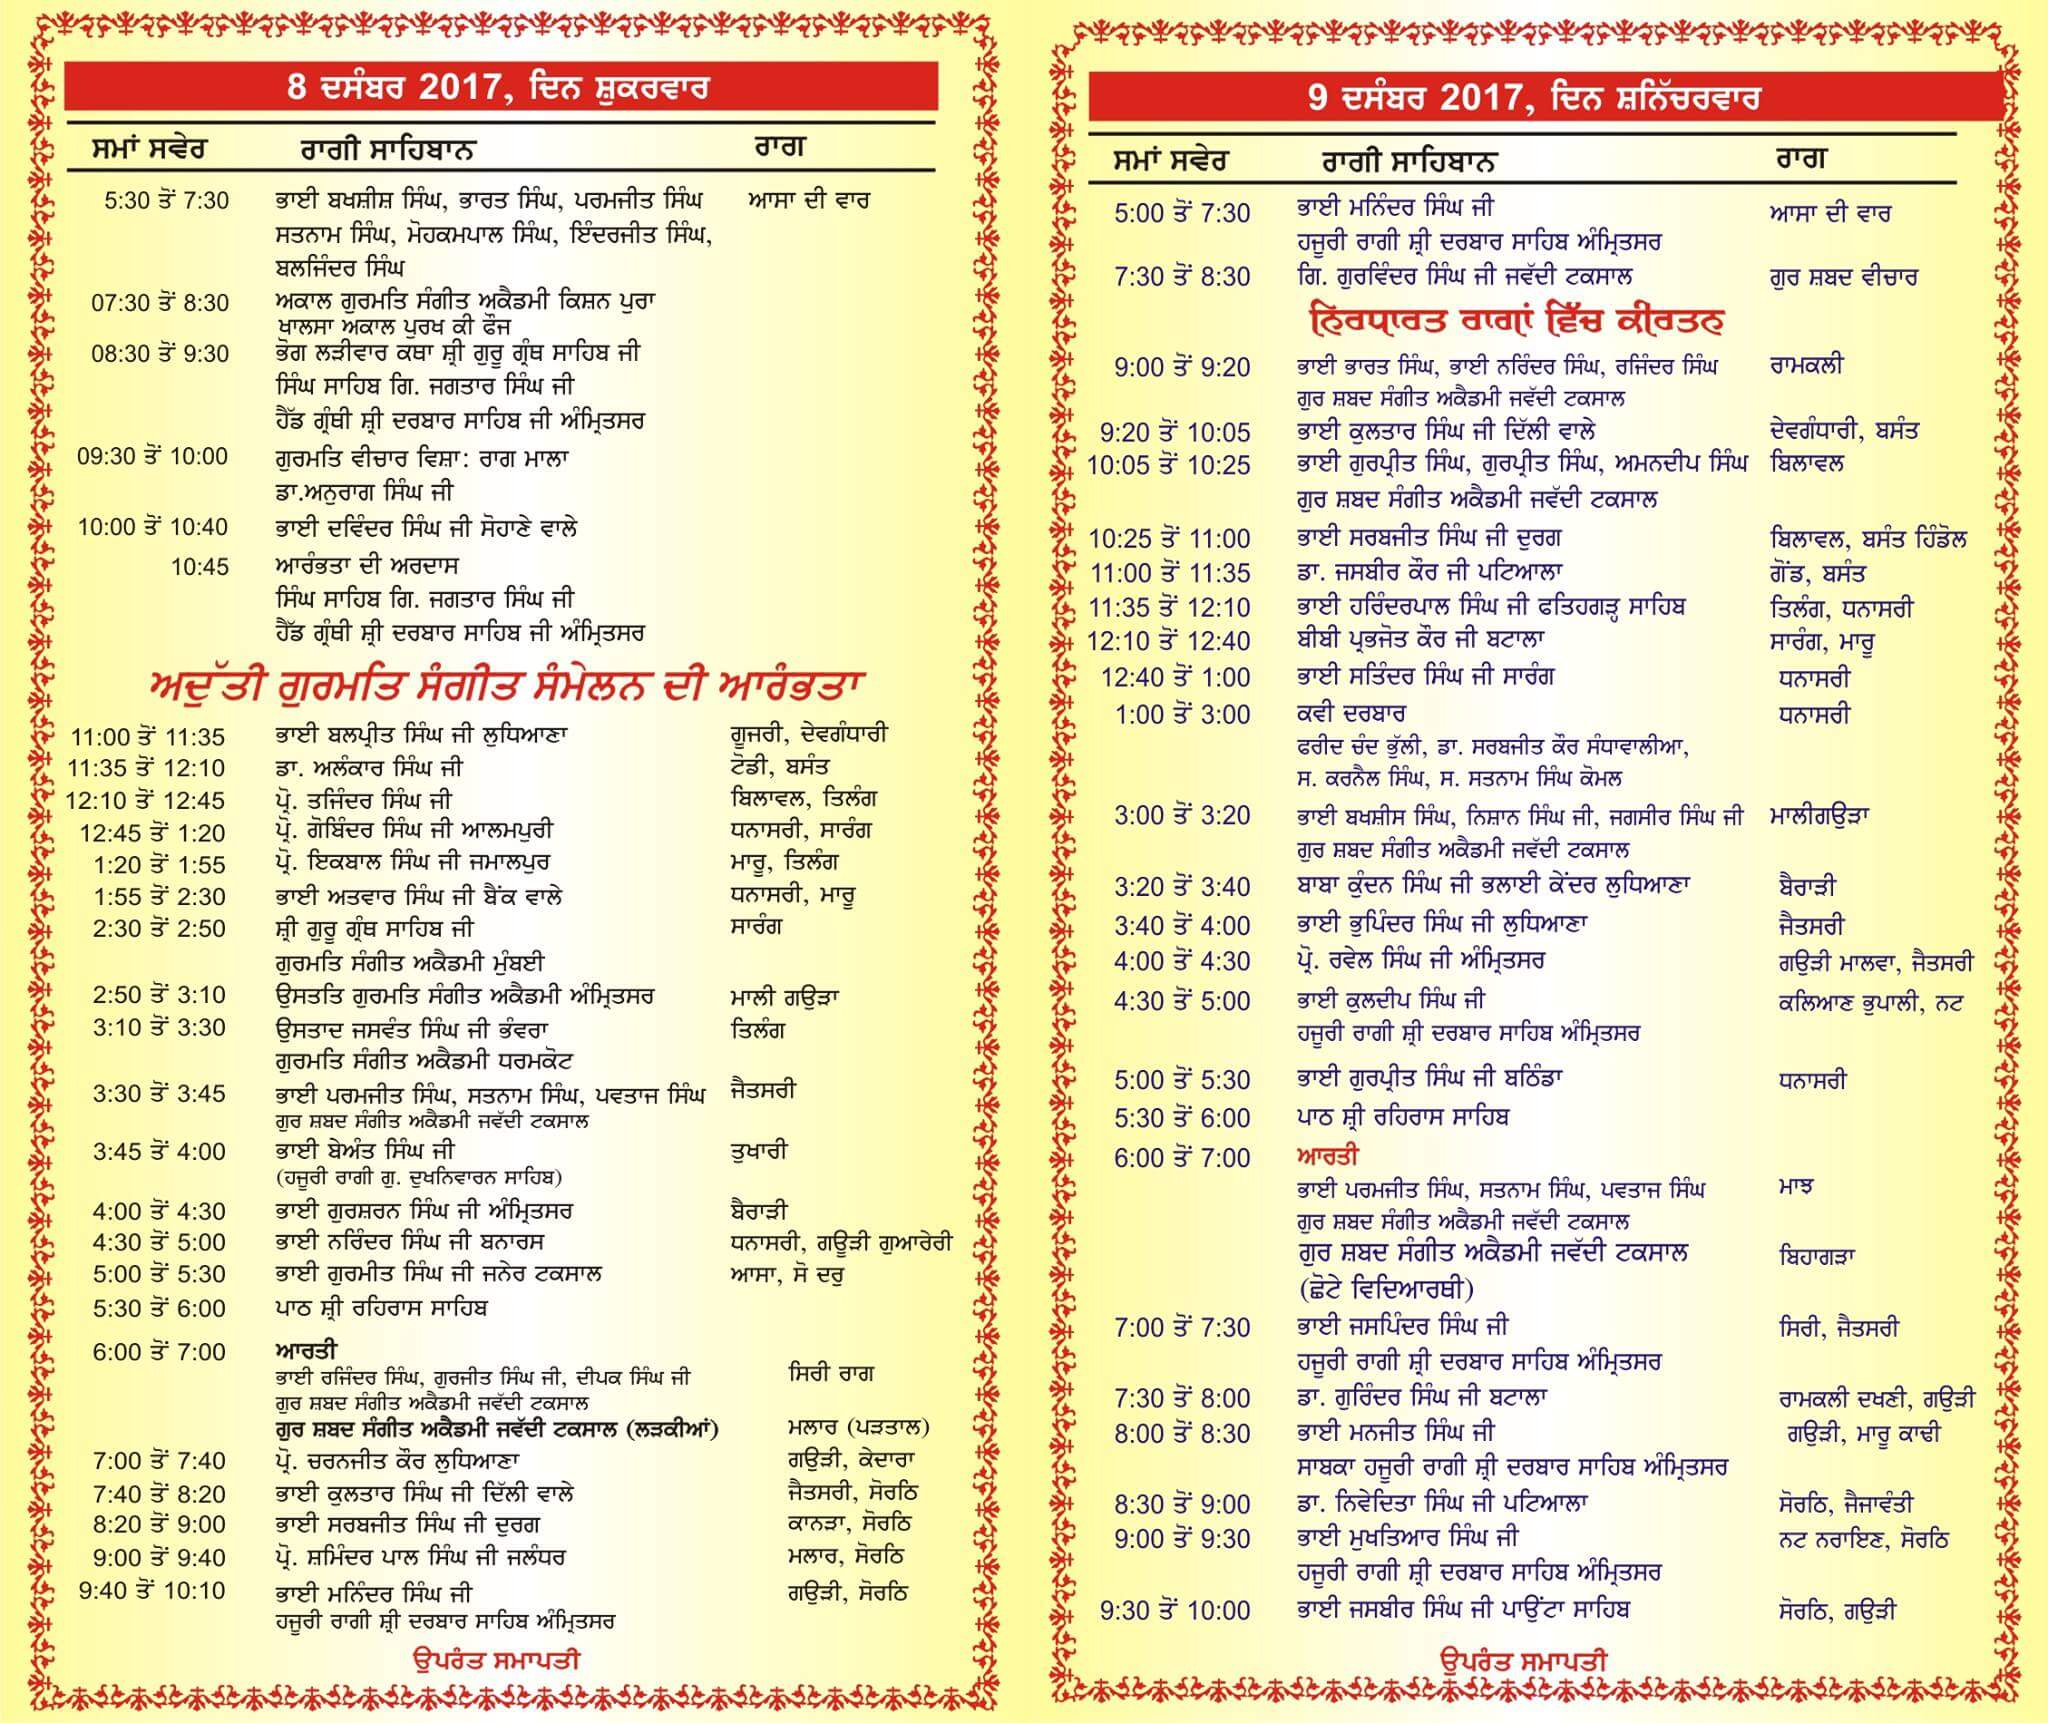 Adutti Gurmat Sangeet 2017 Time Table